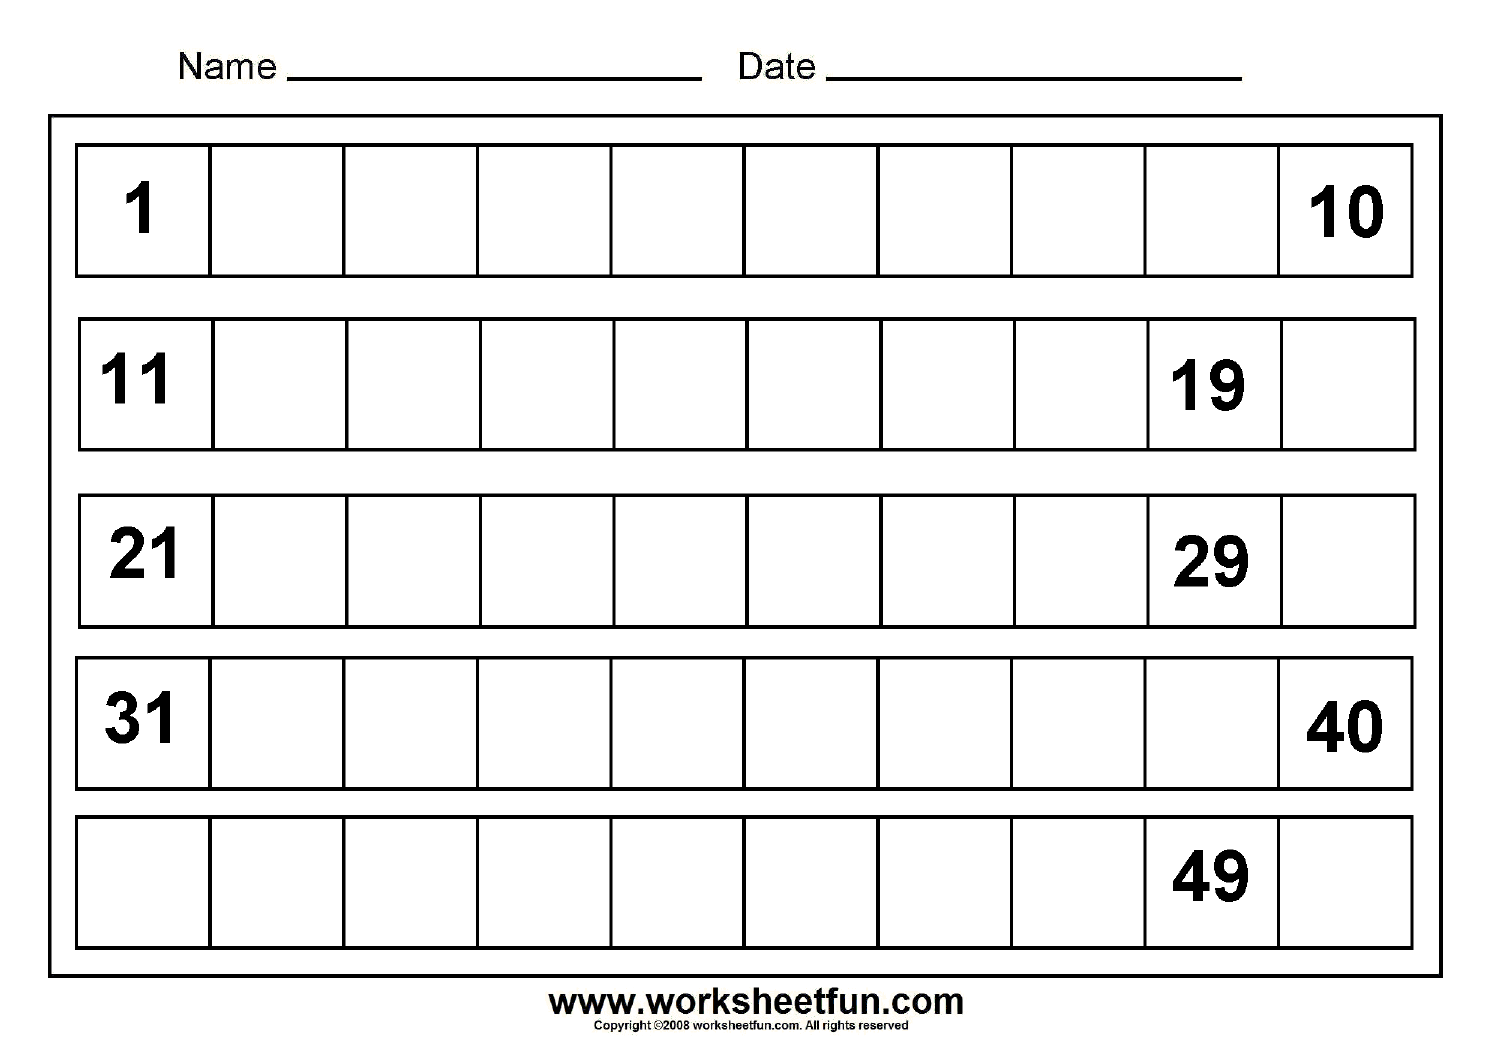 Printables Fill Missing Spaces With Numbers 1 -9 1000 images about numeros 1 al 50 on pinterest count kindergarten worksheets and preschool worksheets